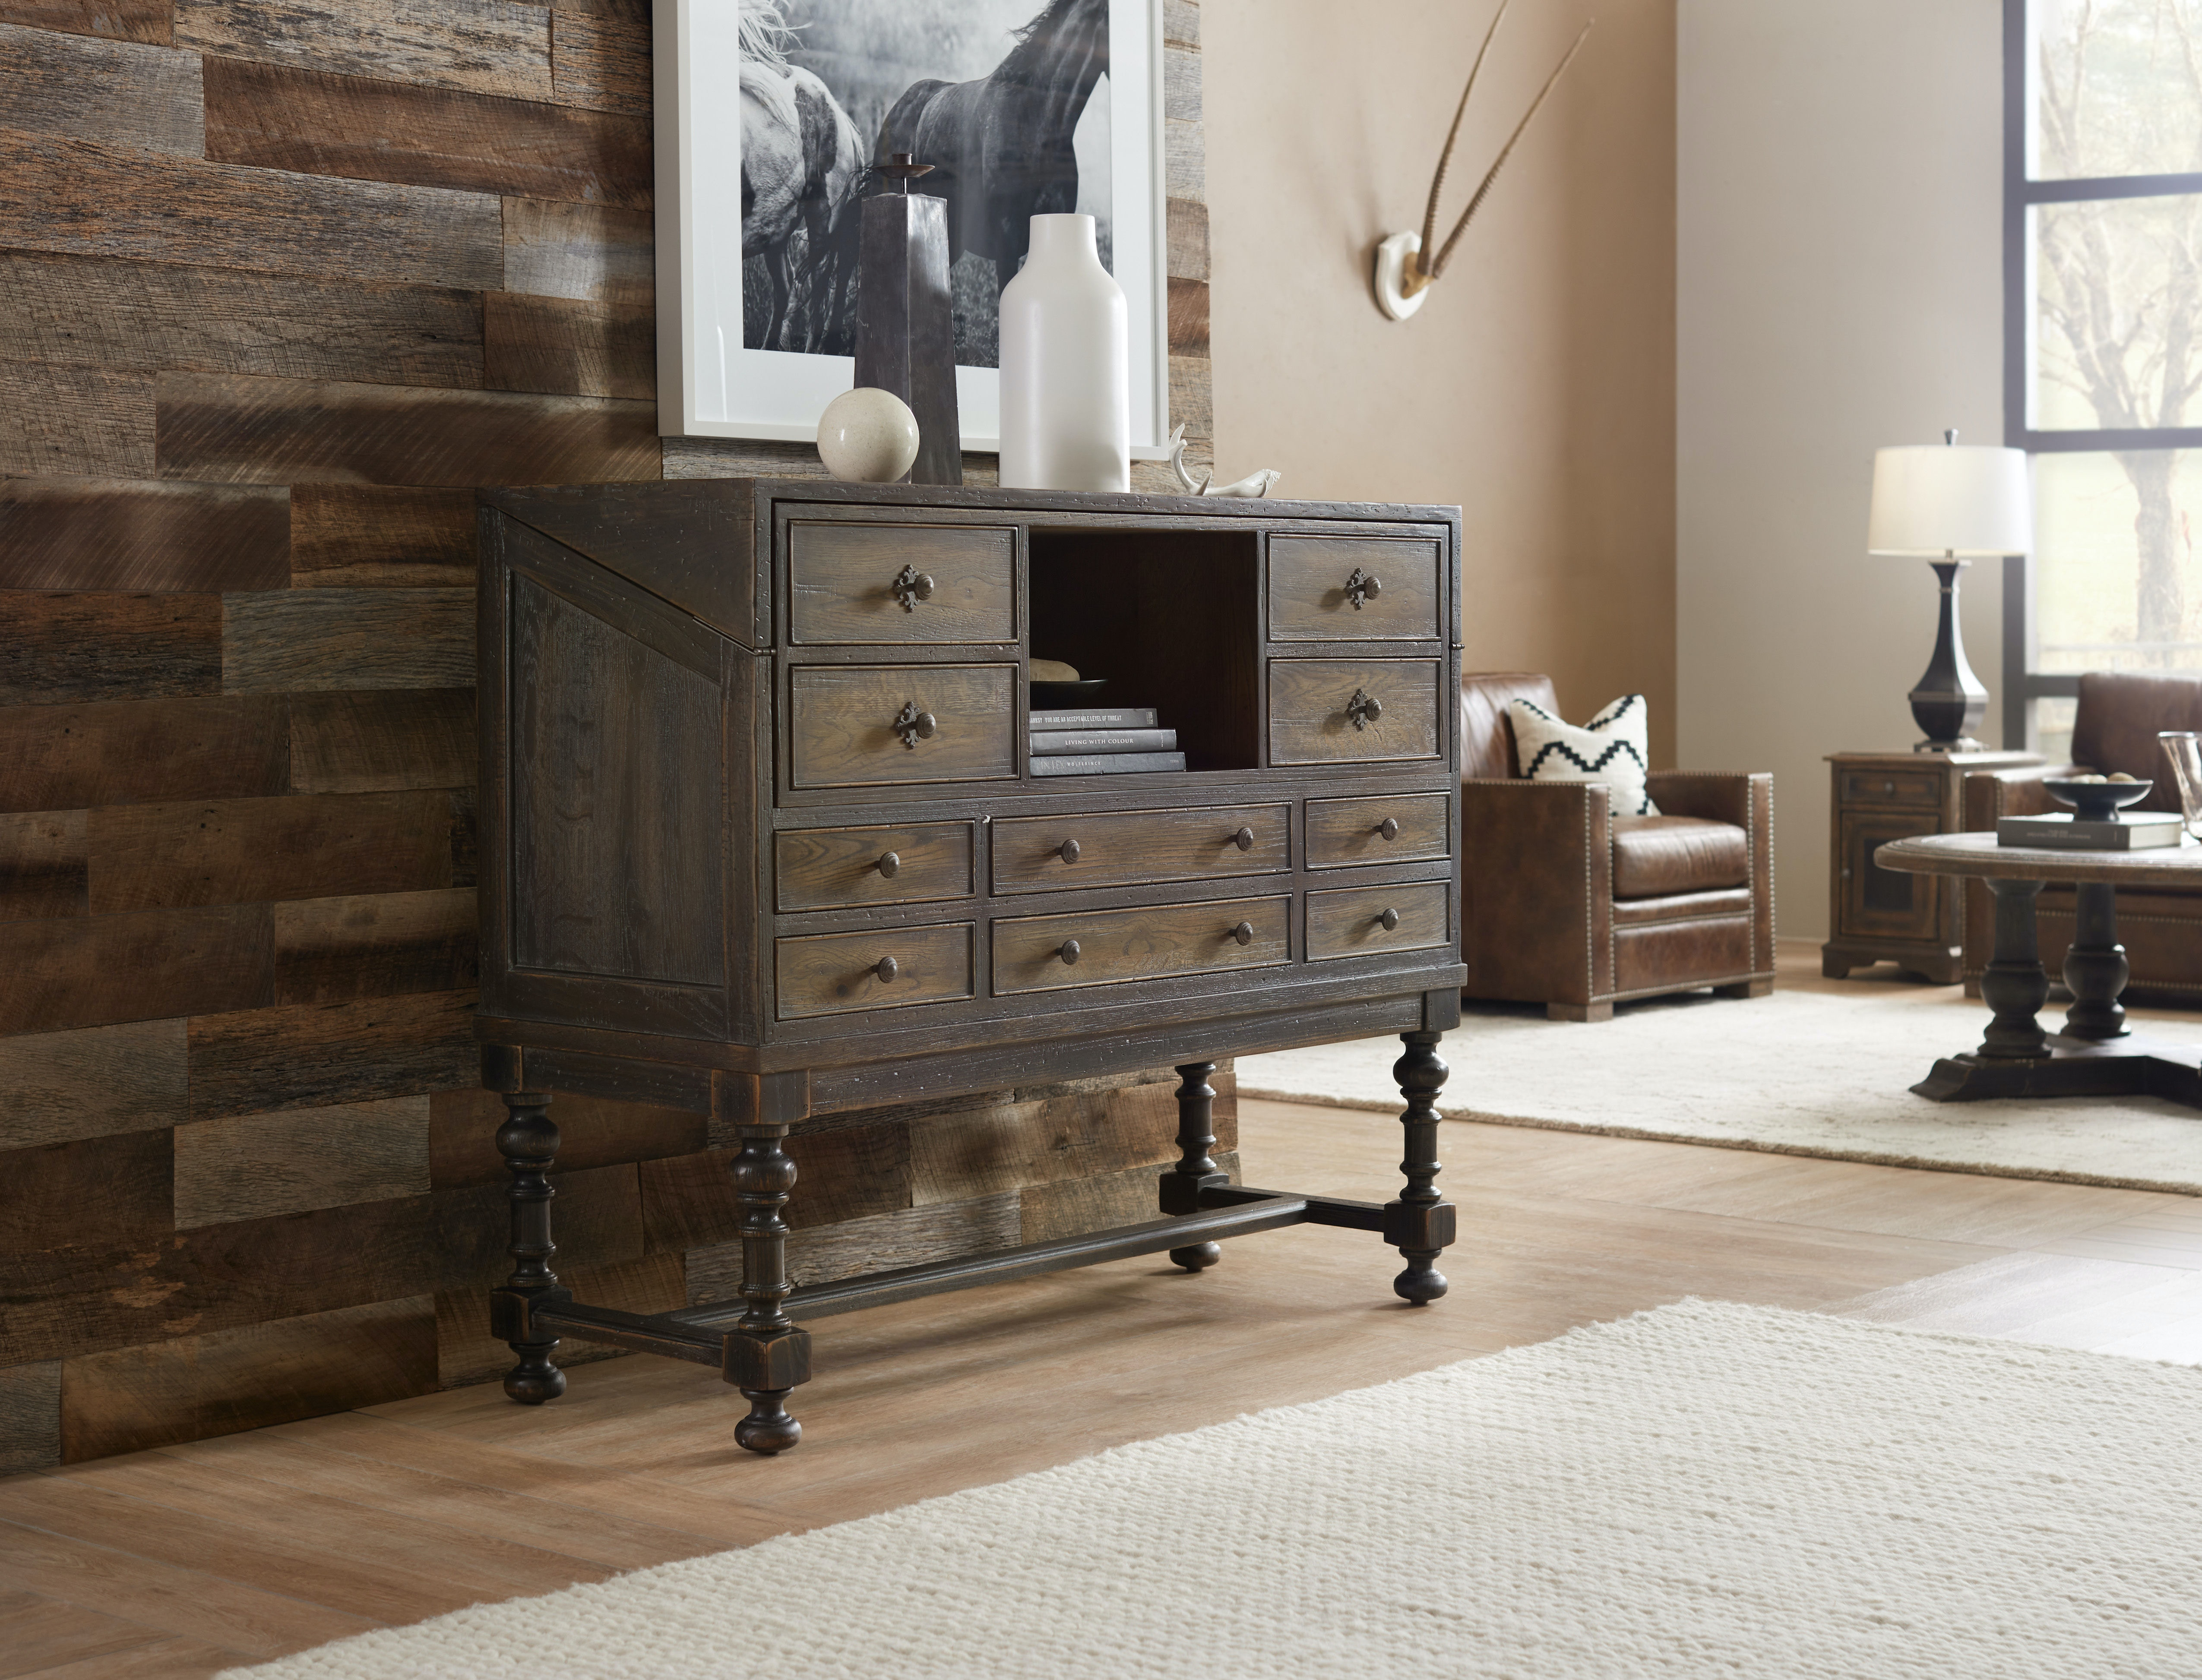 Hooker Furniture Hill Country Boerne Ranch Managers Desk 5960 10482 MULTI